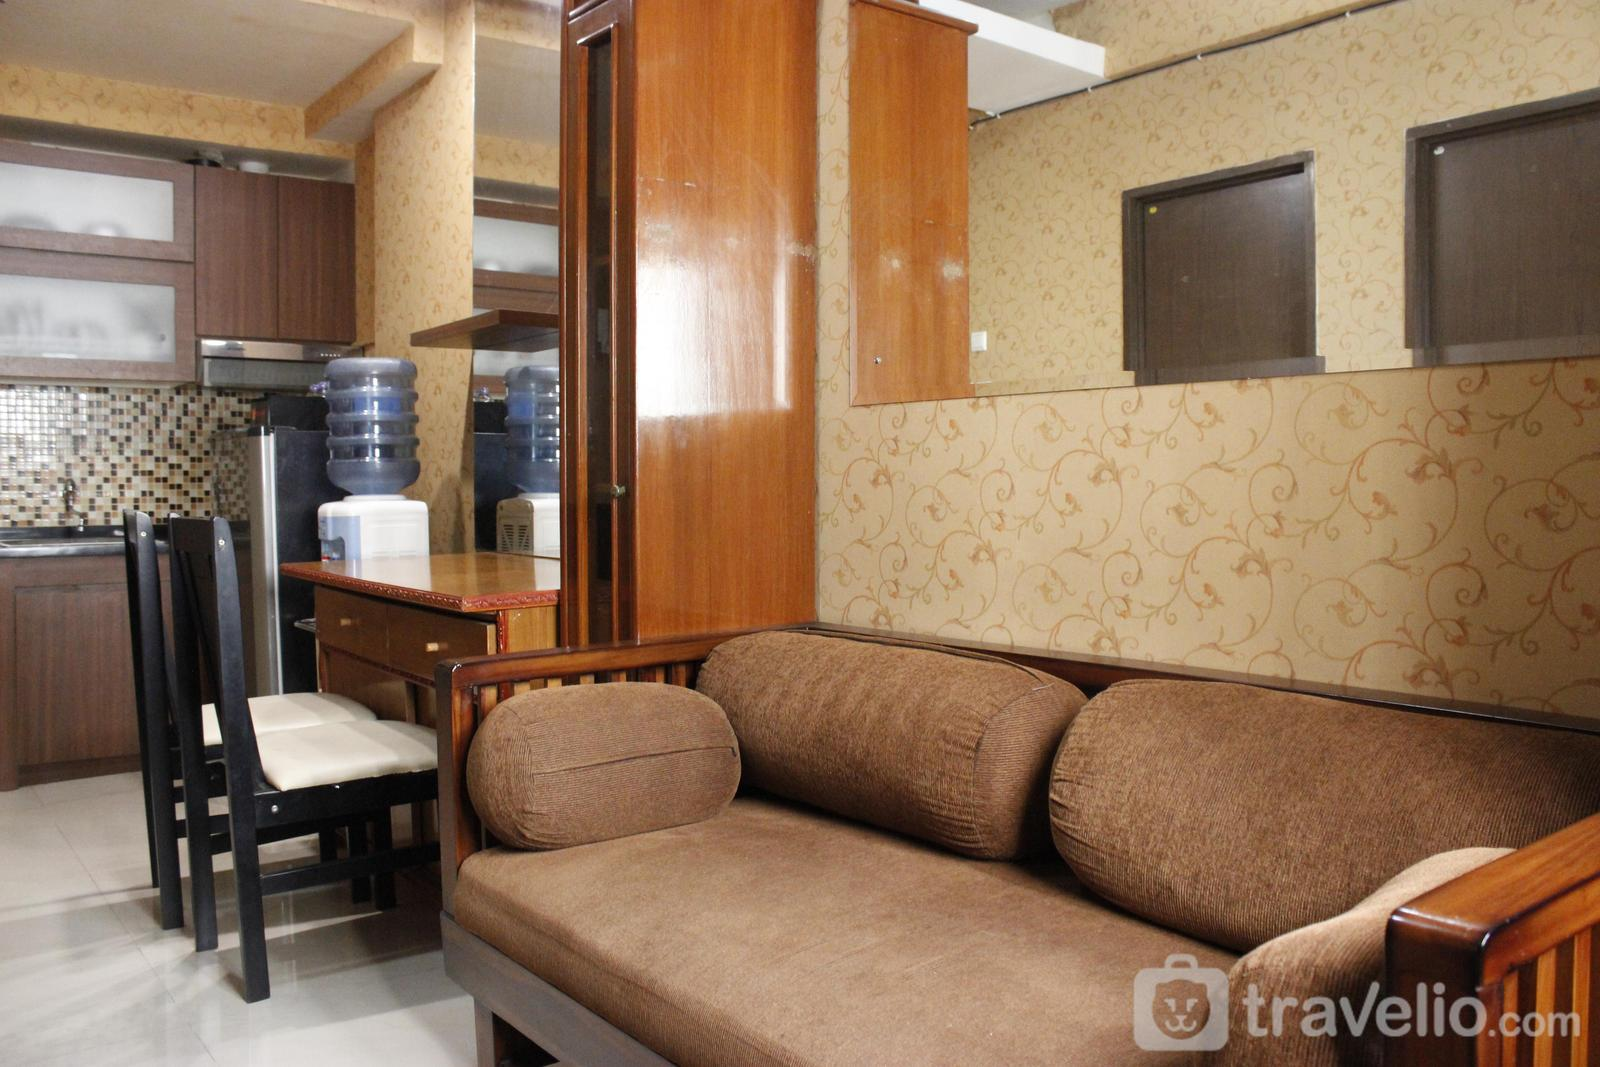 The Suites @Metro - Compact 2BR The Suites @Metro Apartment By Travelio